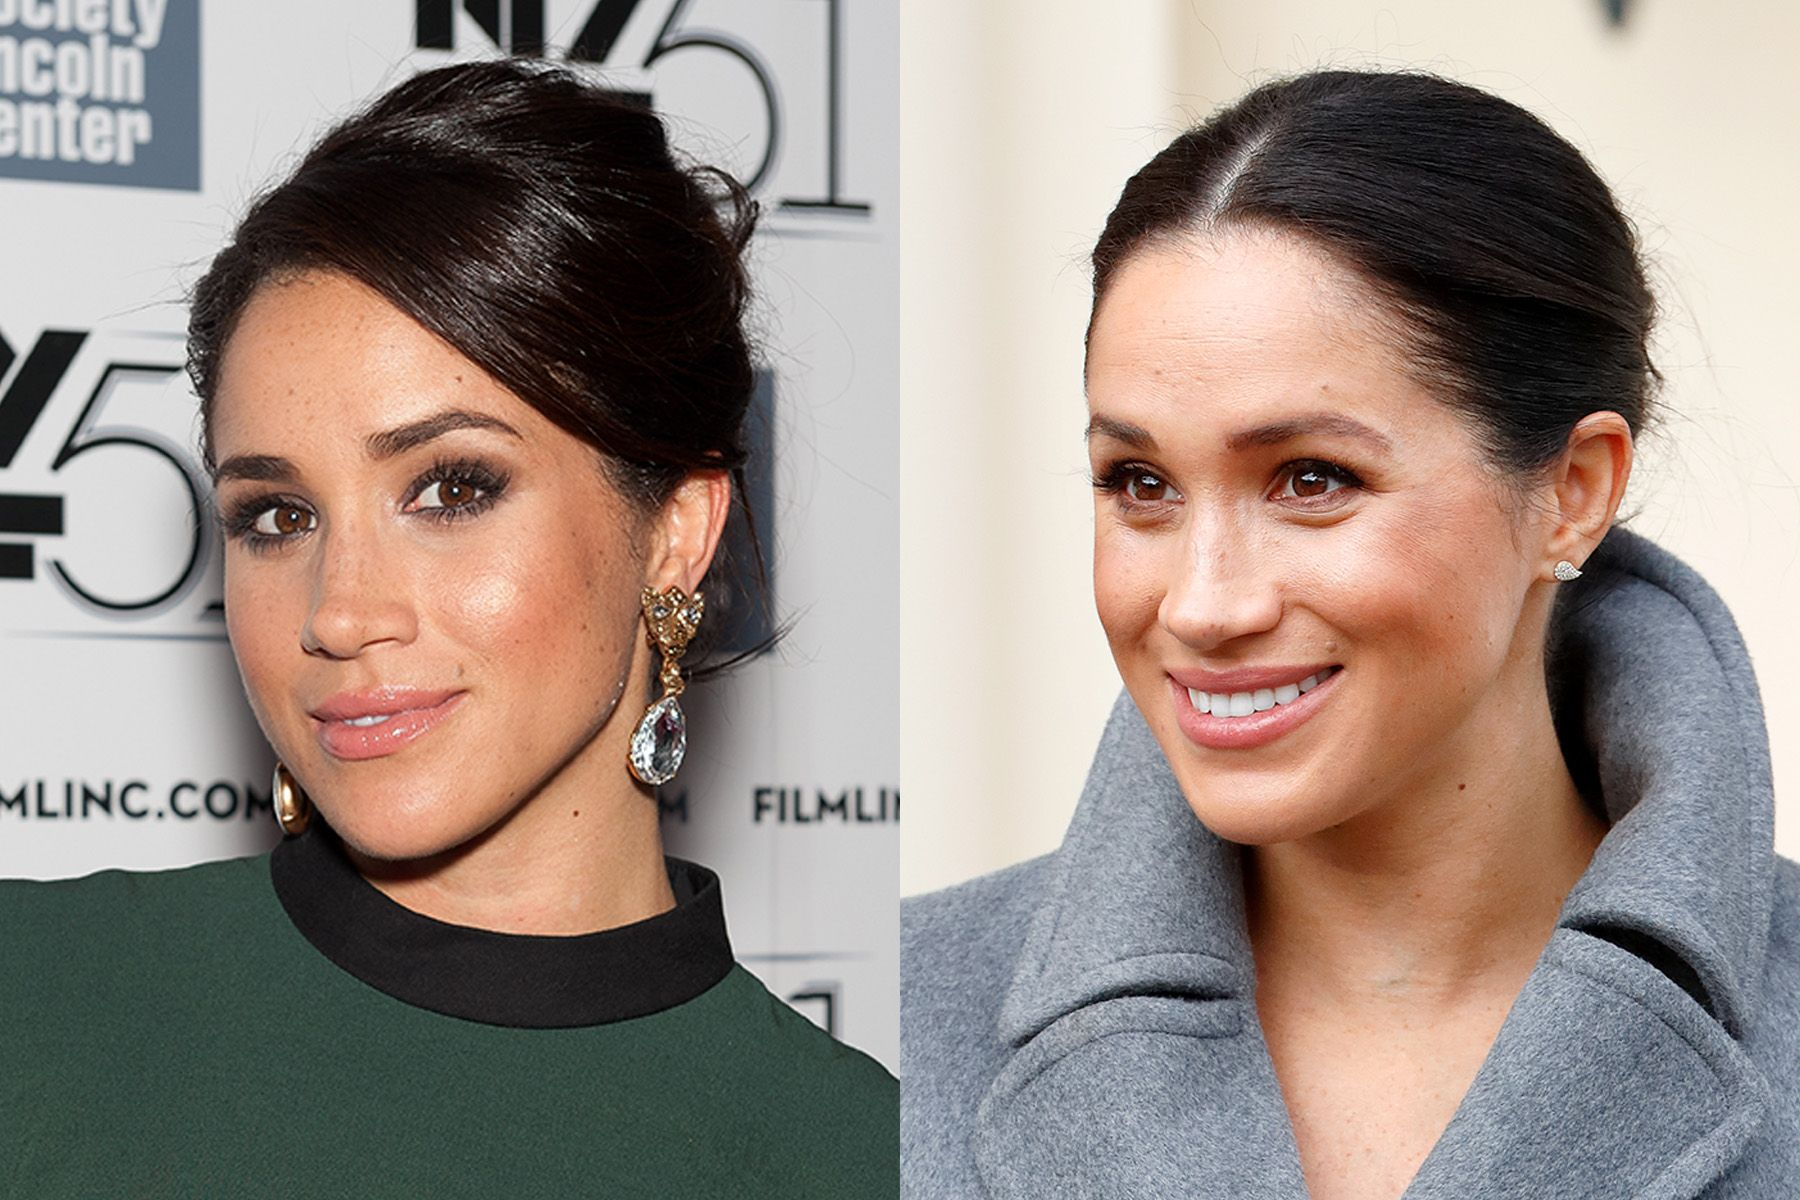 Meghan Markle Before Meghan's royal days, she was best known for her role as Rachel in Suits and never shied away from a smokey eye on the red carpet. These days, the Duchess opts for a more natural and simple look.